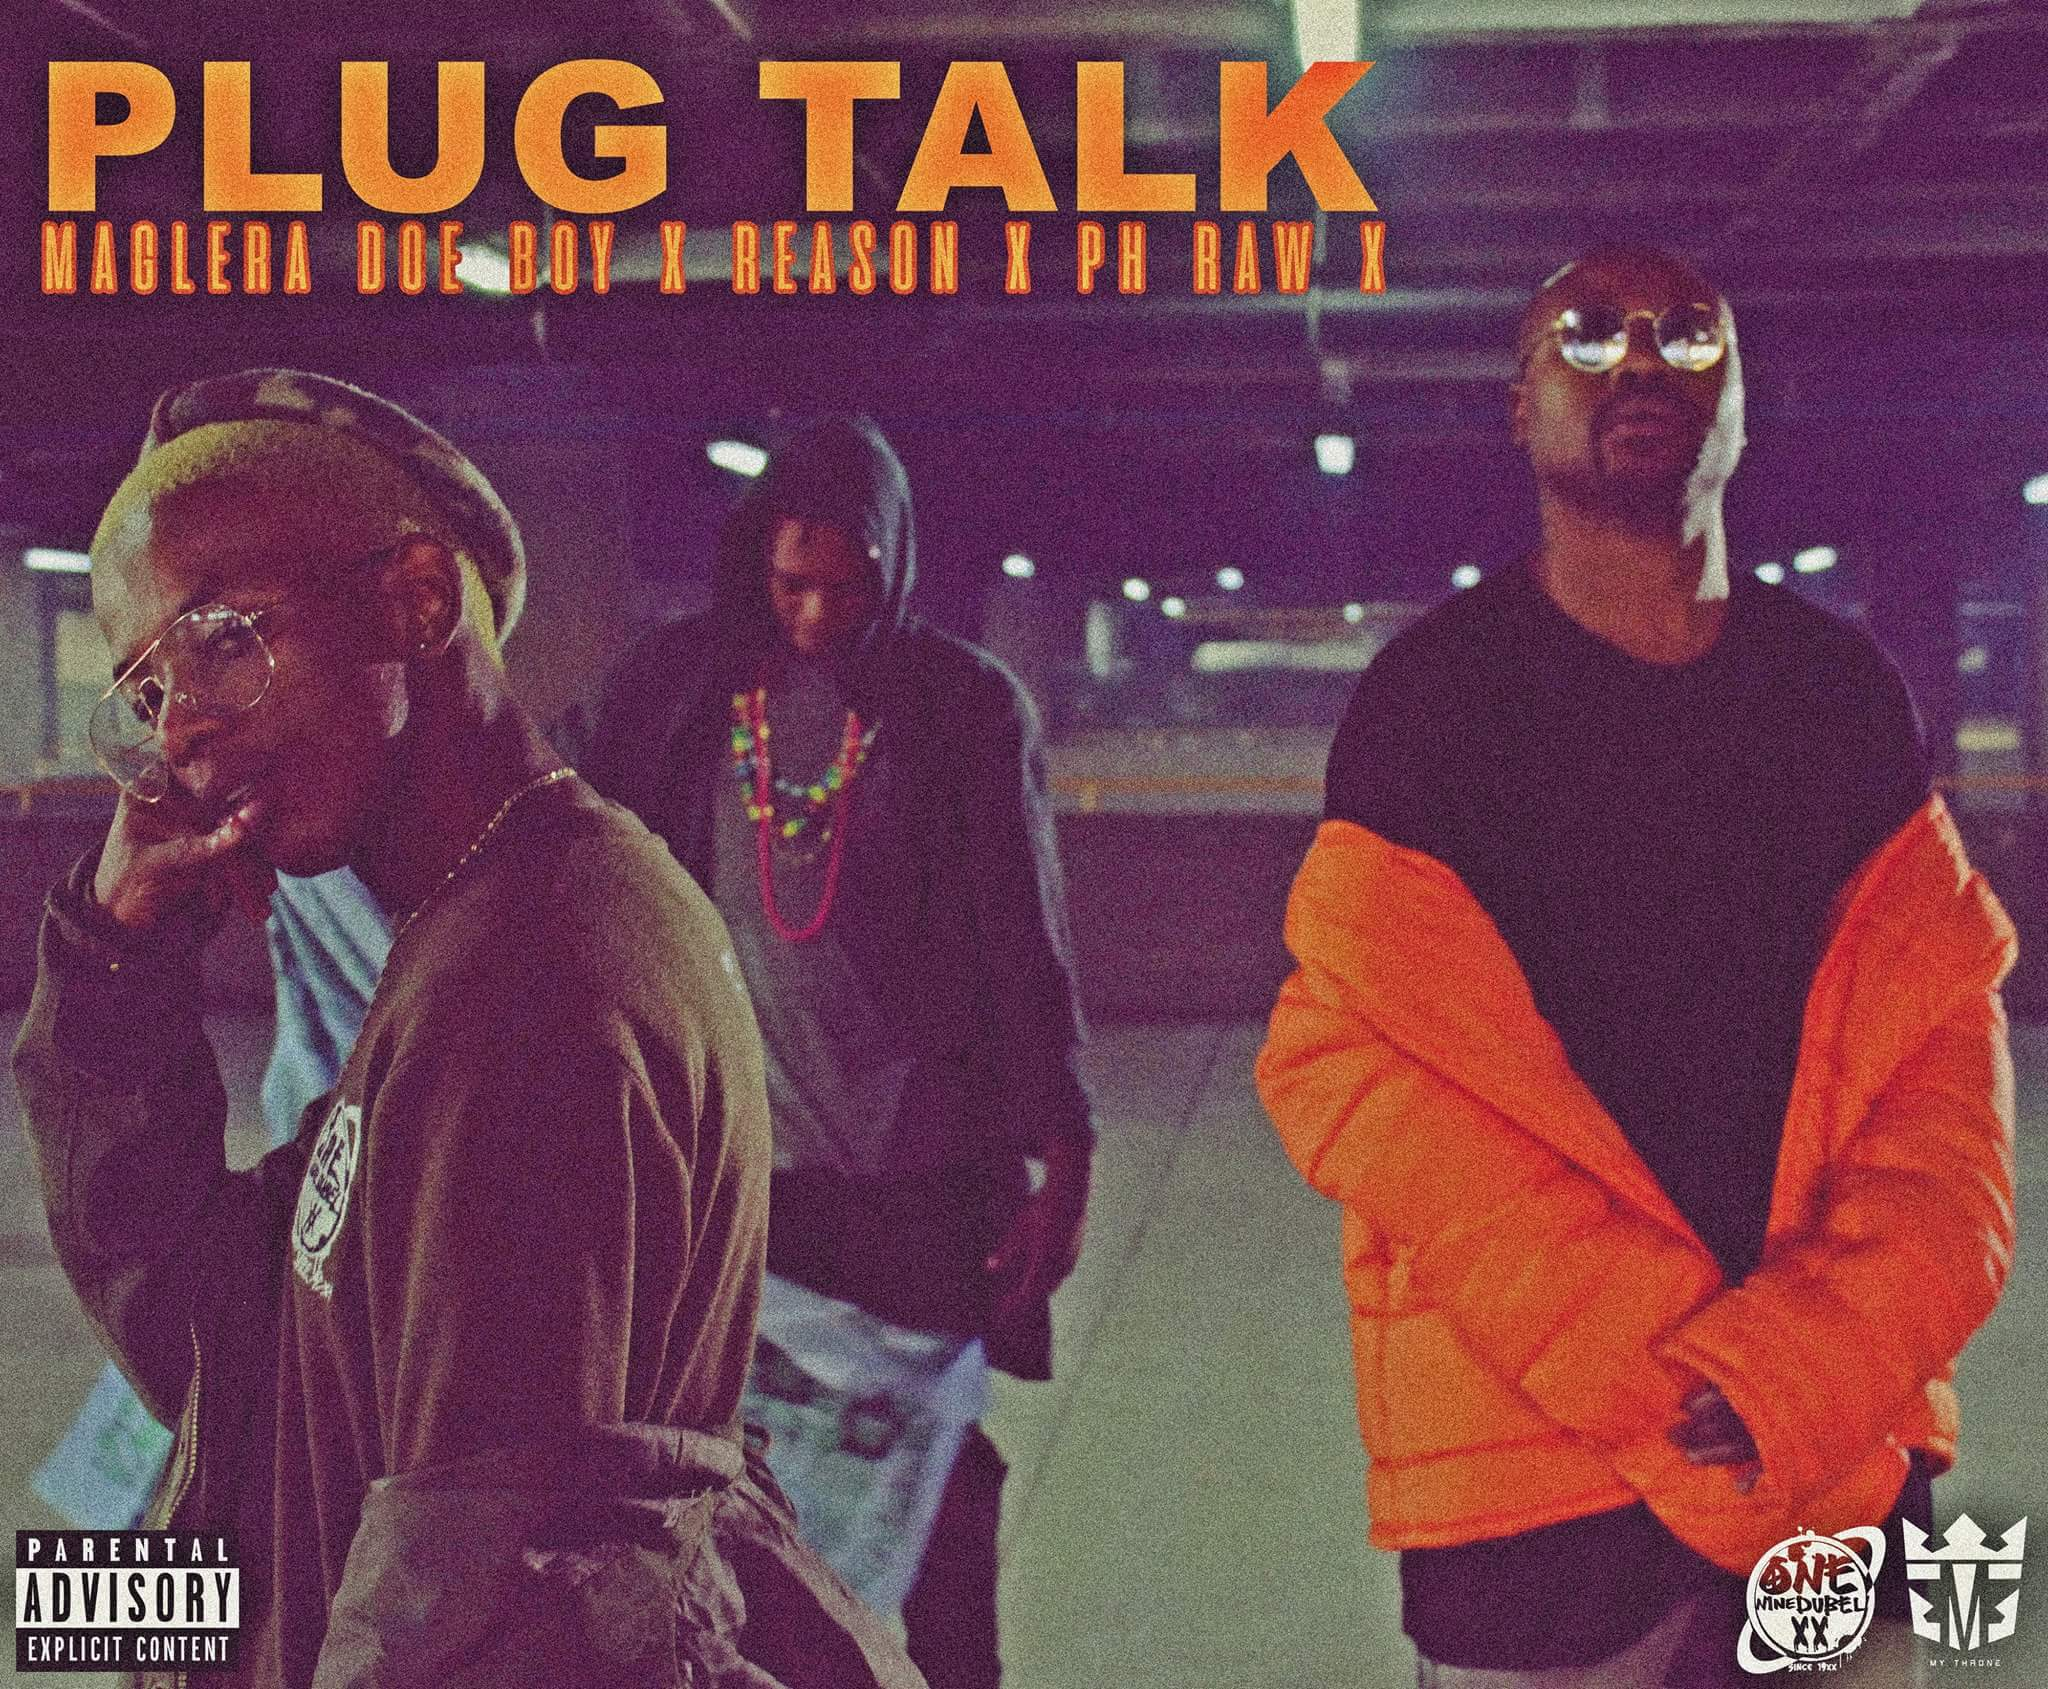 Maglera Doe Boy Drops New 'Plug Talk' Video Ft. pH Raw X & Reason [Watch] 22219658 10209919146475134 4258962074614404319 o